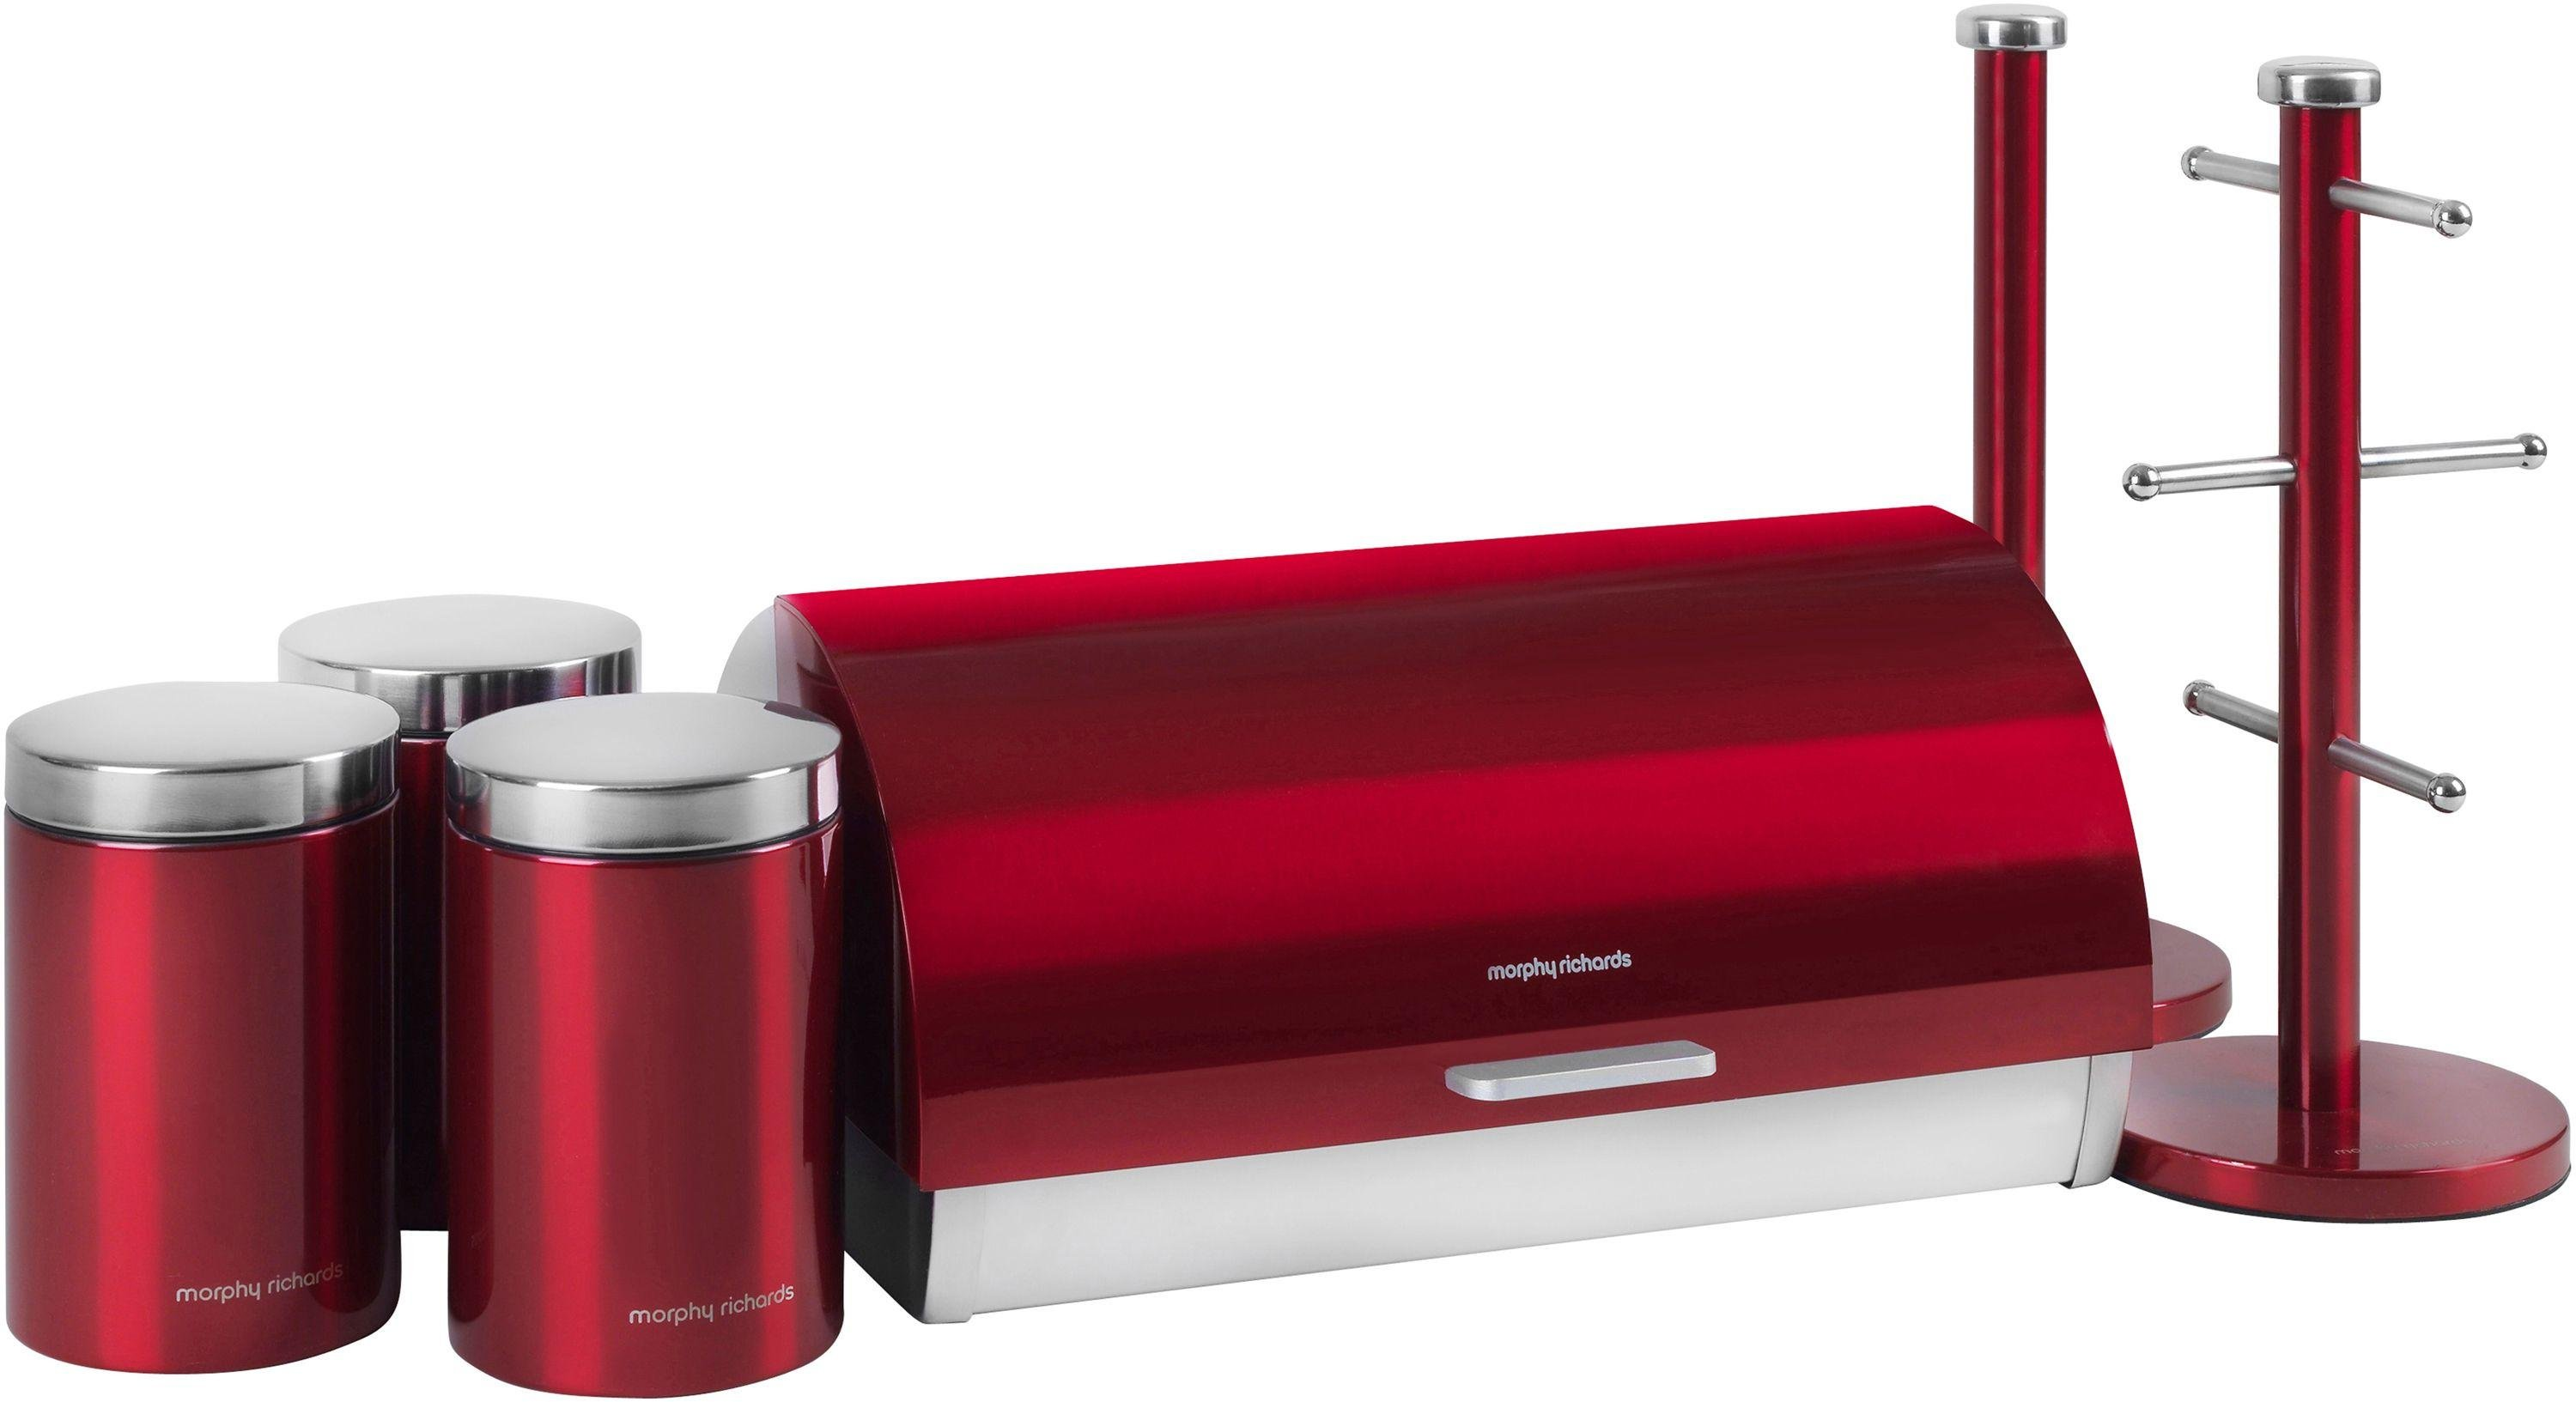 morphy-richards-accents-6-piece-storage-set-red